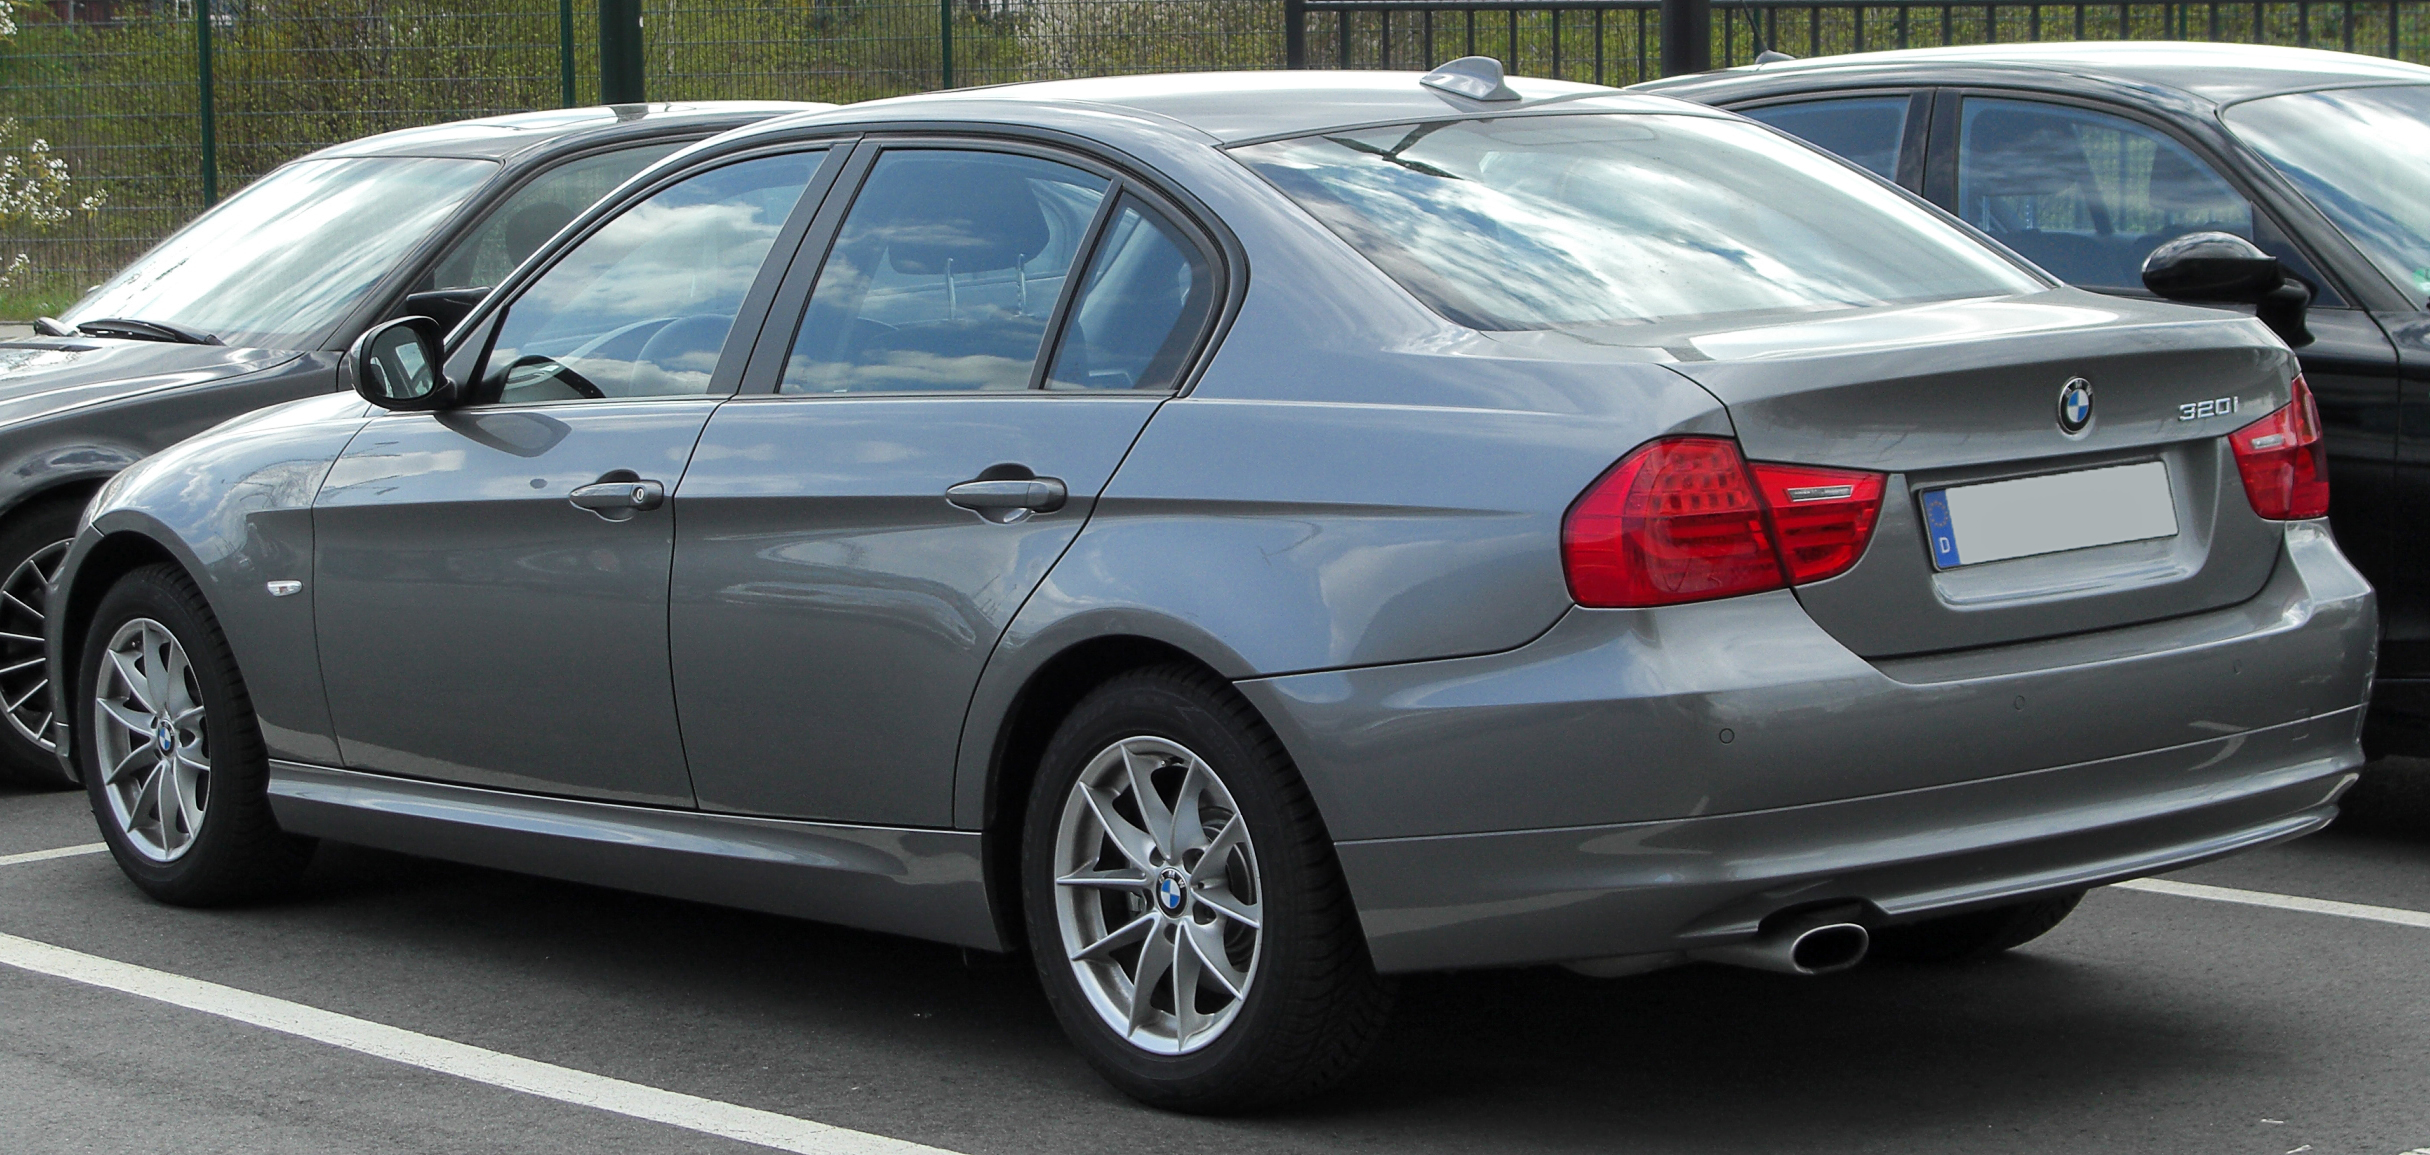 File Bmw 320i E90 Facelift Rear 20100410 Jpg Wikipedia